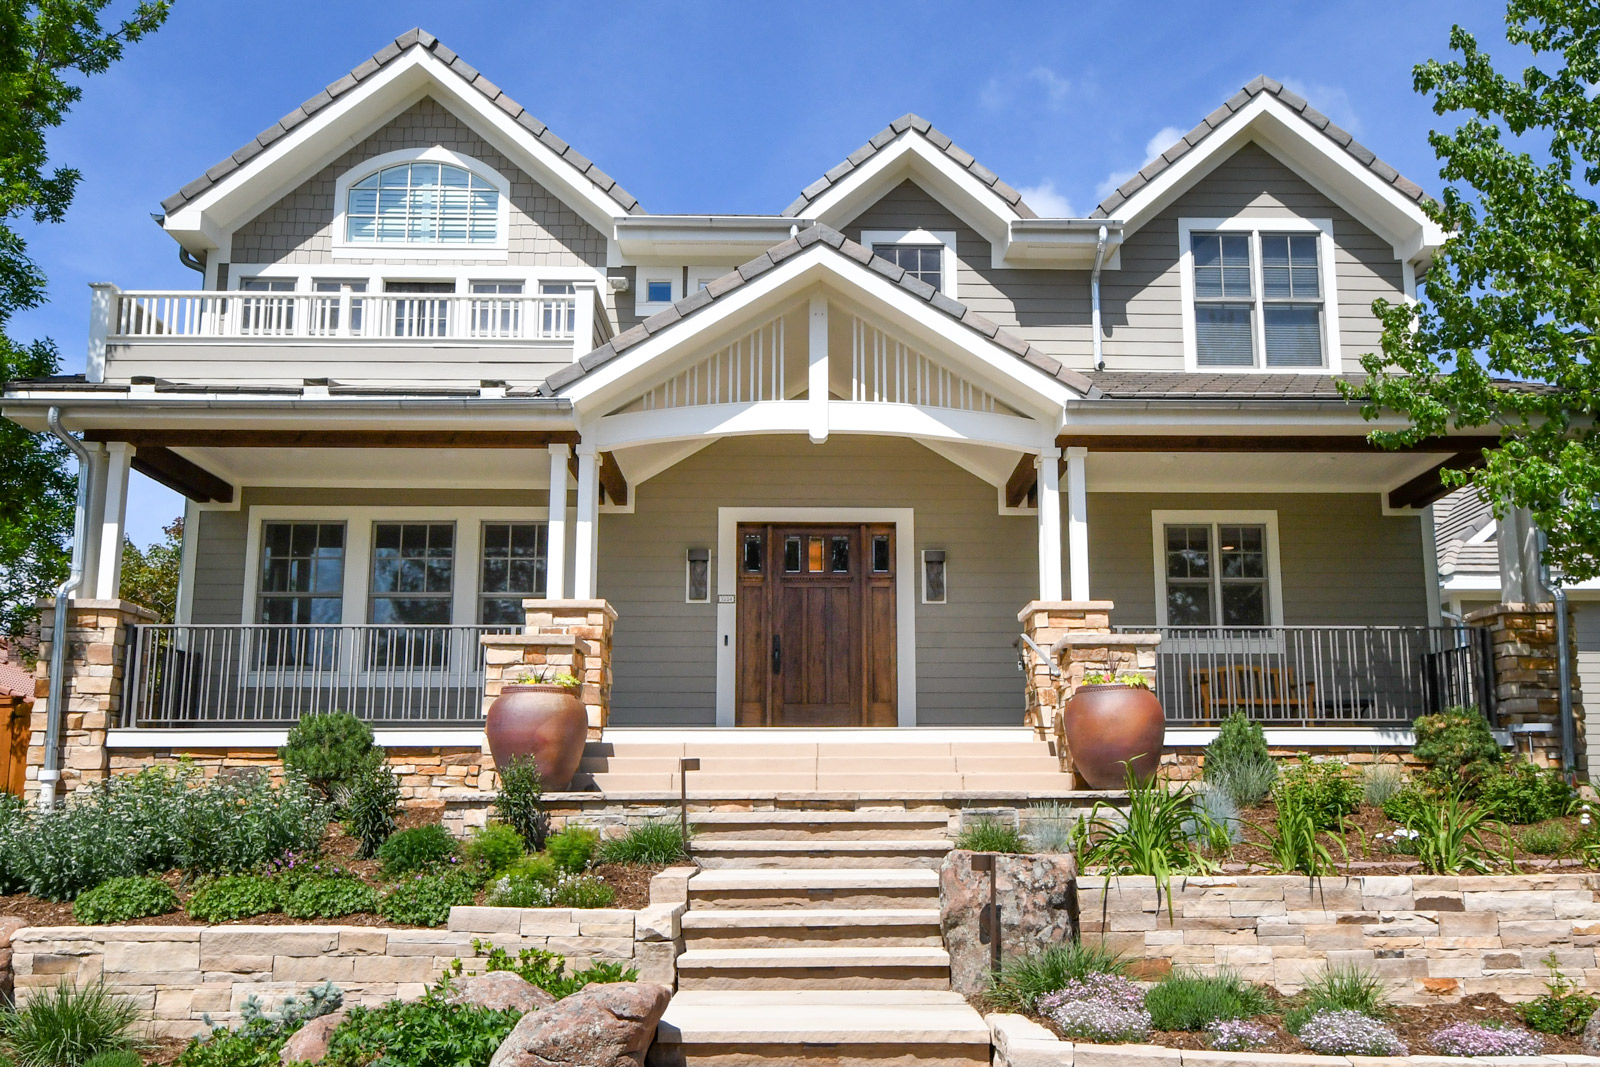 Home - image 7054-rustic-trail-exterior-elevation-front on https://www.flatironsconstruct.com